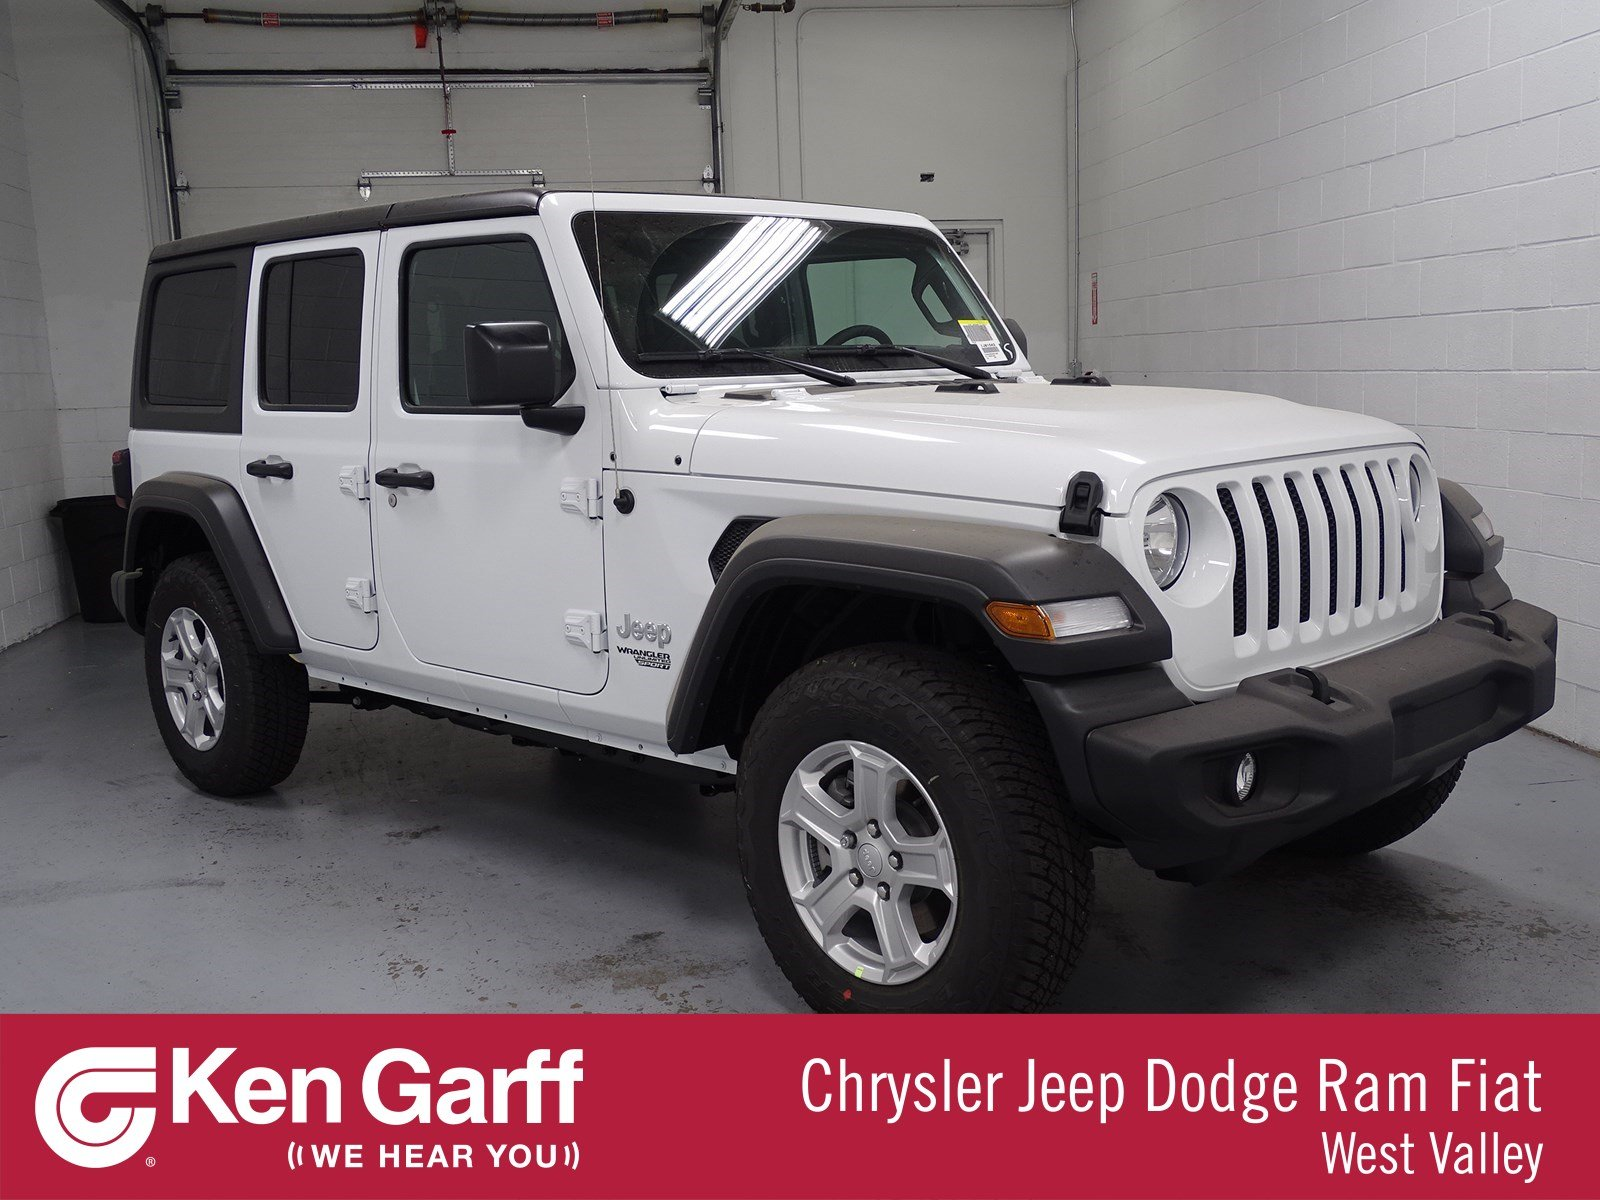 New 2018 Jeep Wrangler Unlimited Sport S Convertible 1j81042 Ken 0 Dodge Dakota Custom Fit Vehicle Wiring Tow Ready